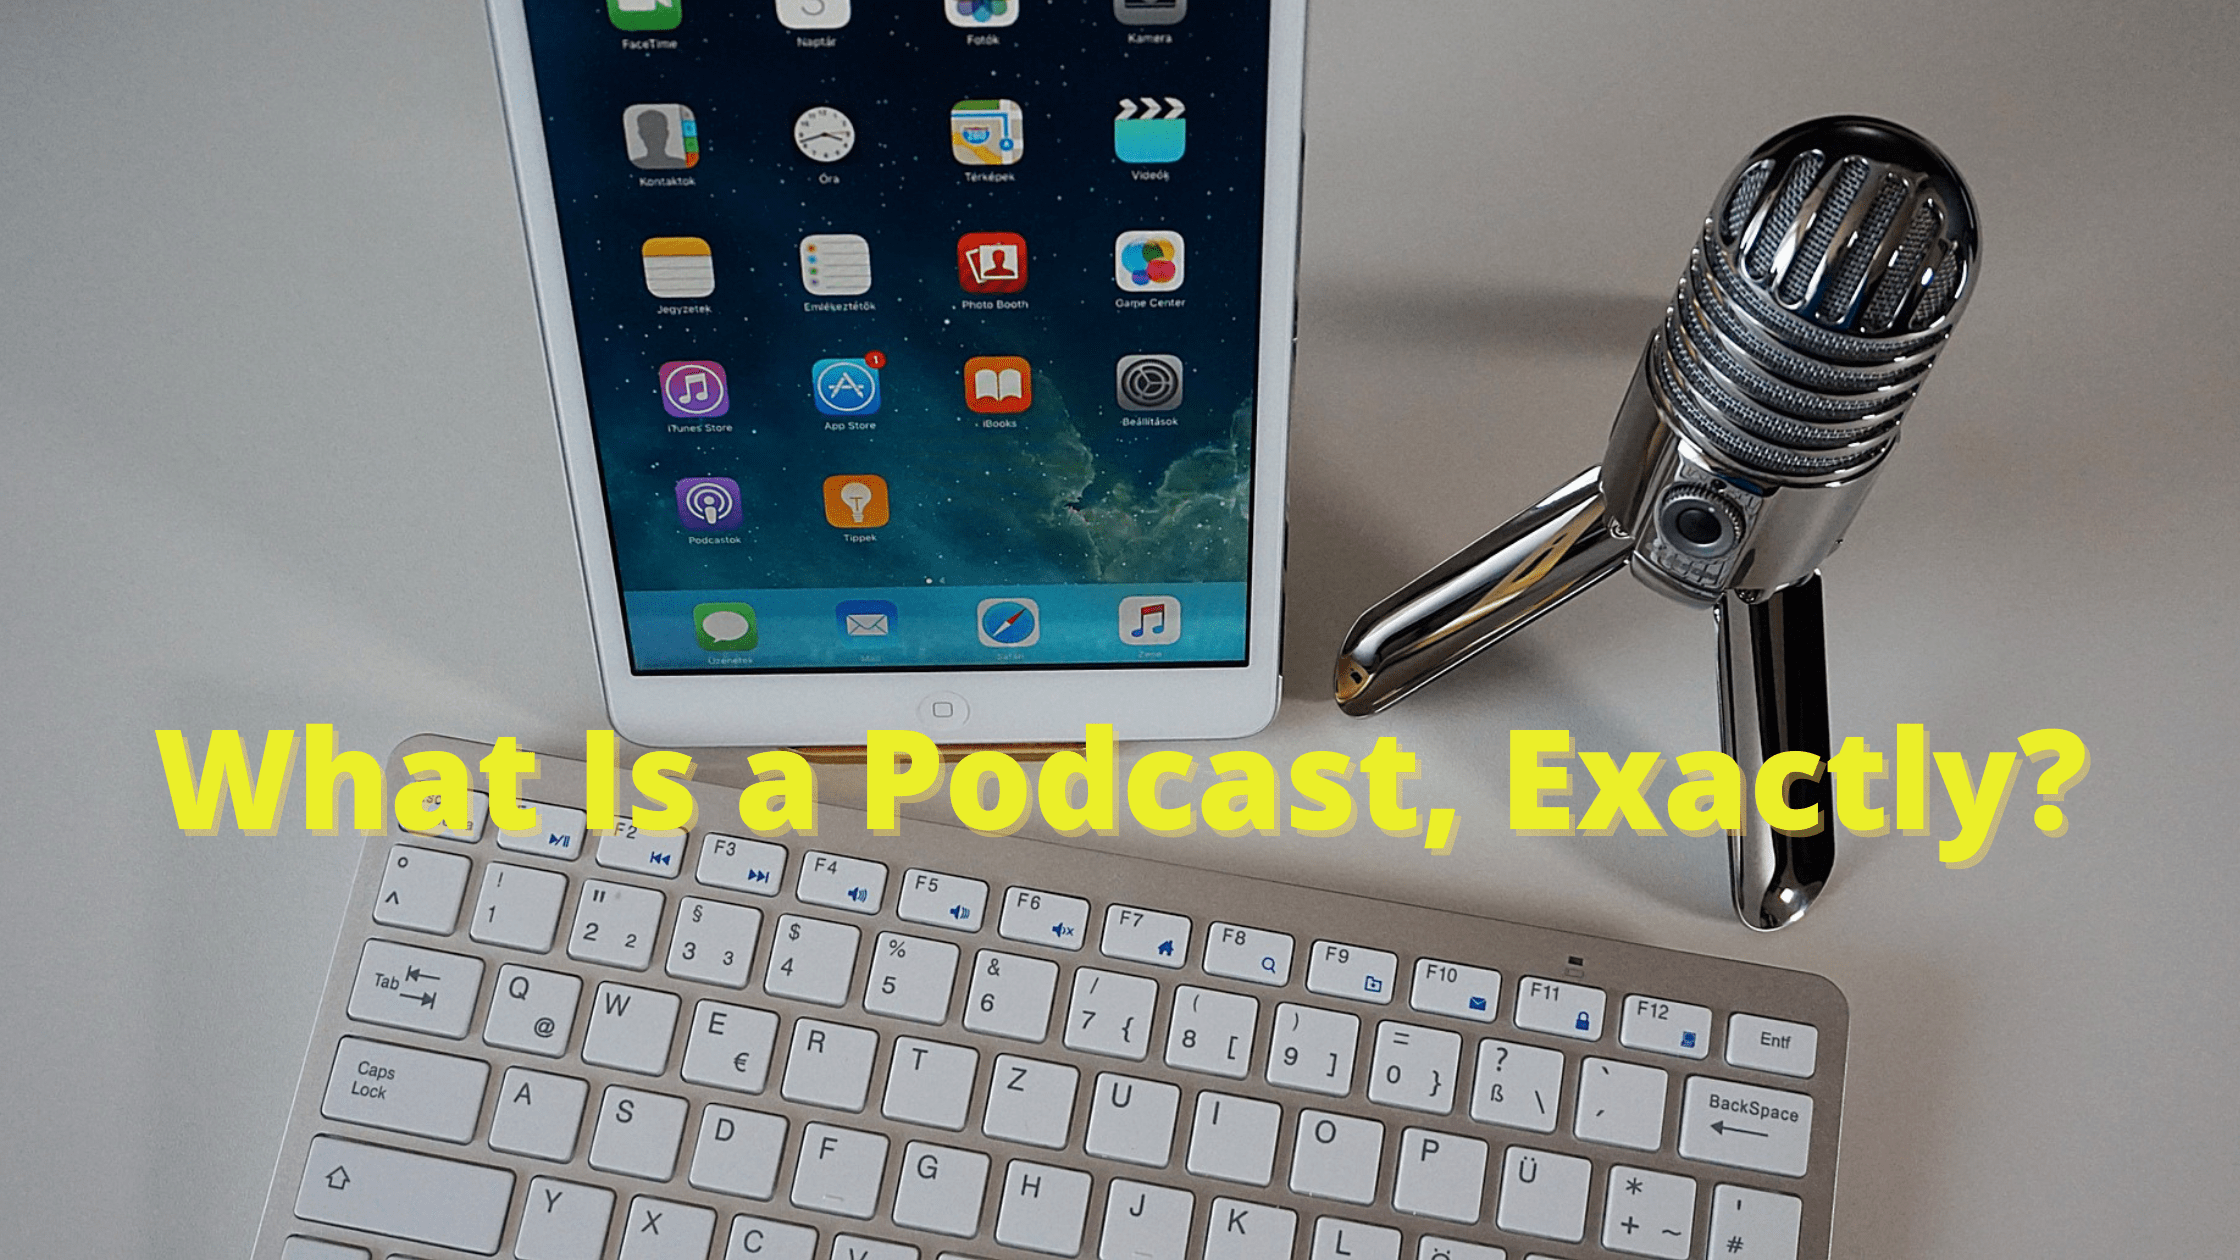 What Is a Podcast, Exactly?